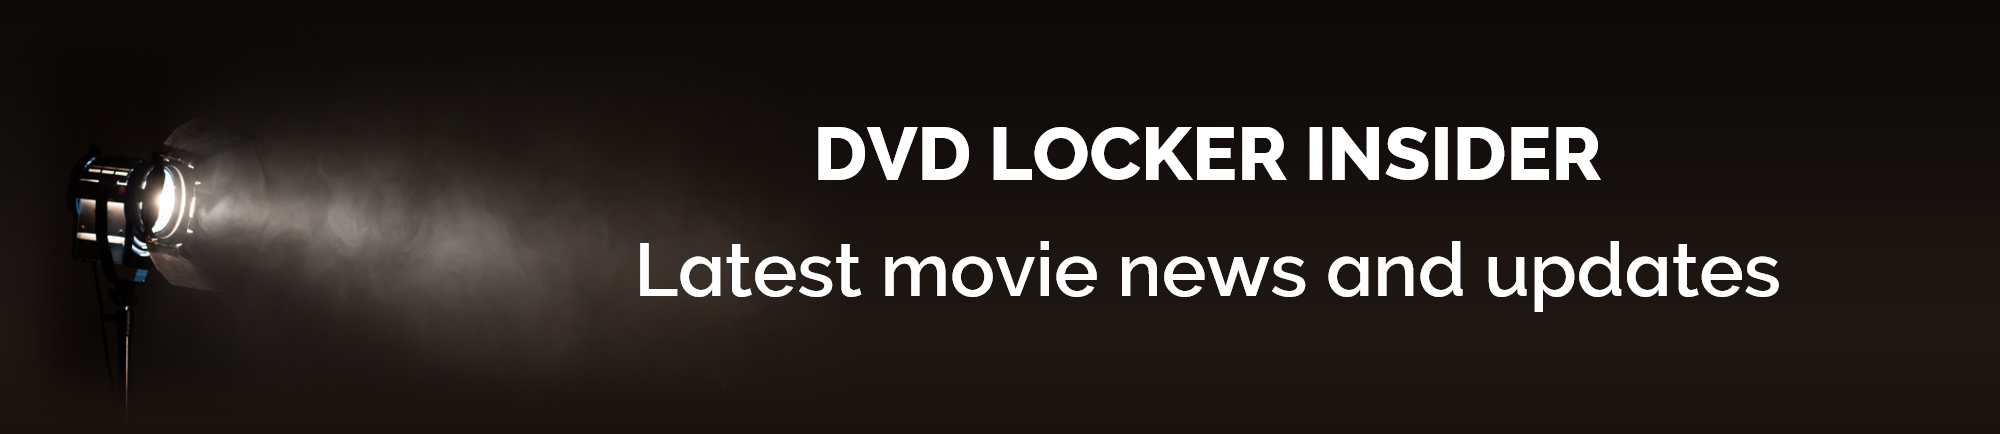 DVD Locker Insider - Latest movie news and updates